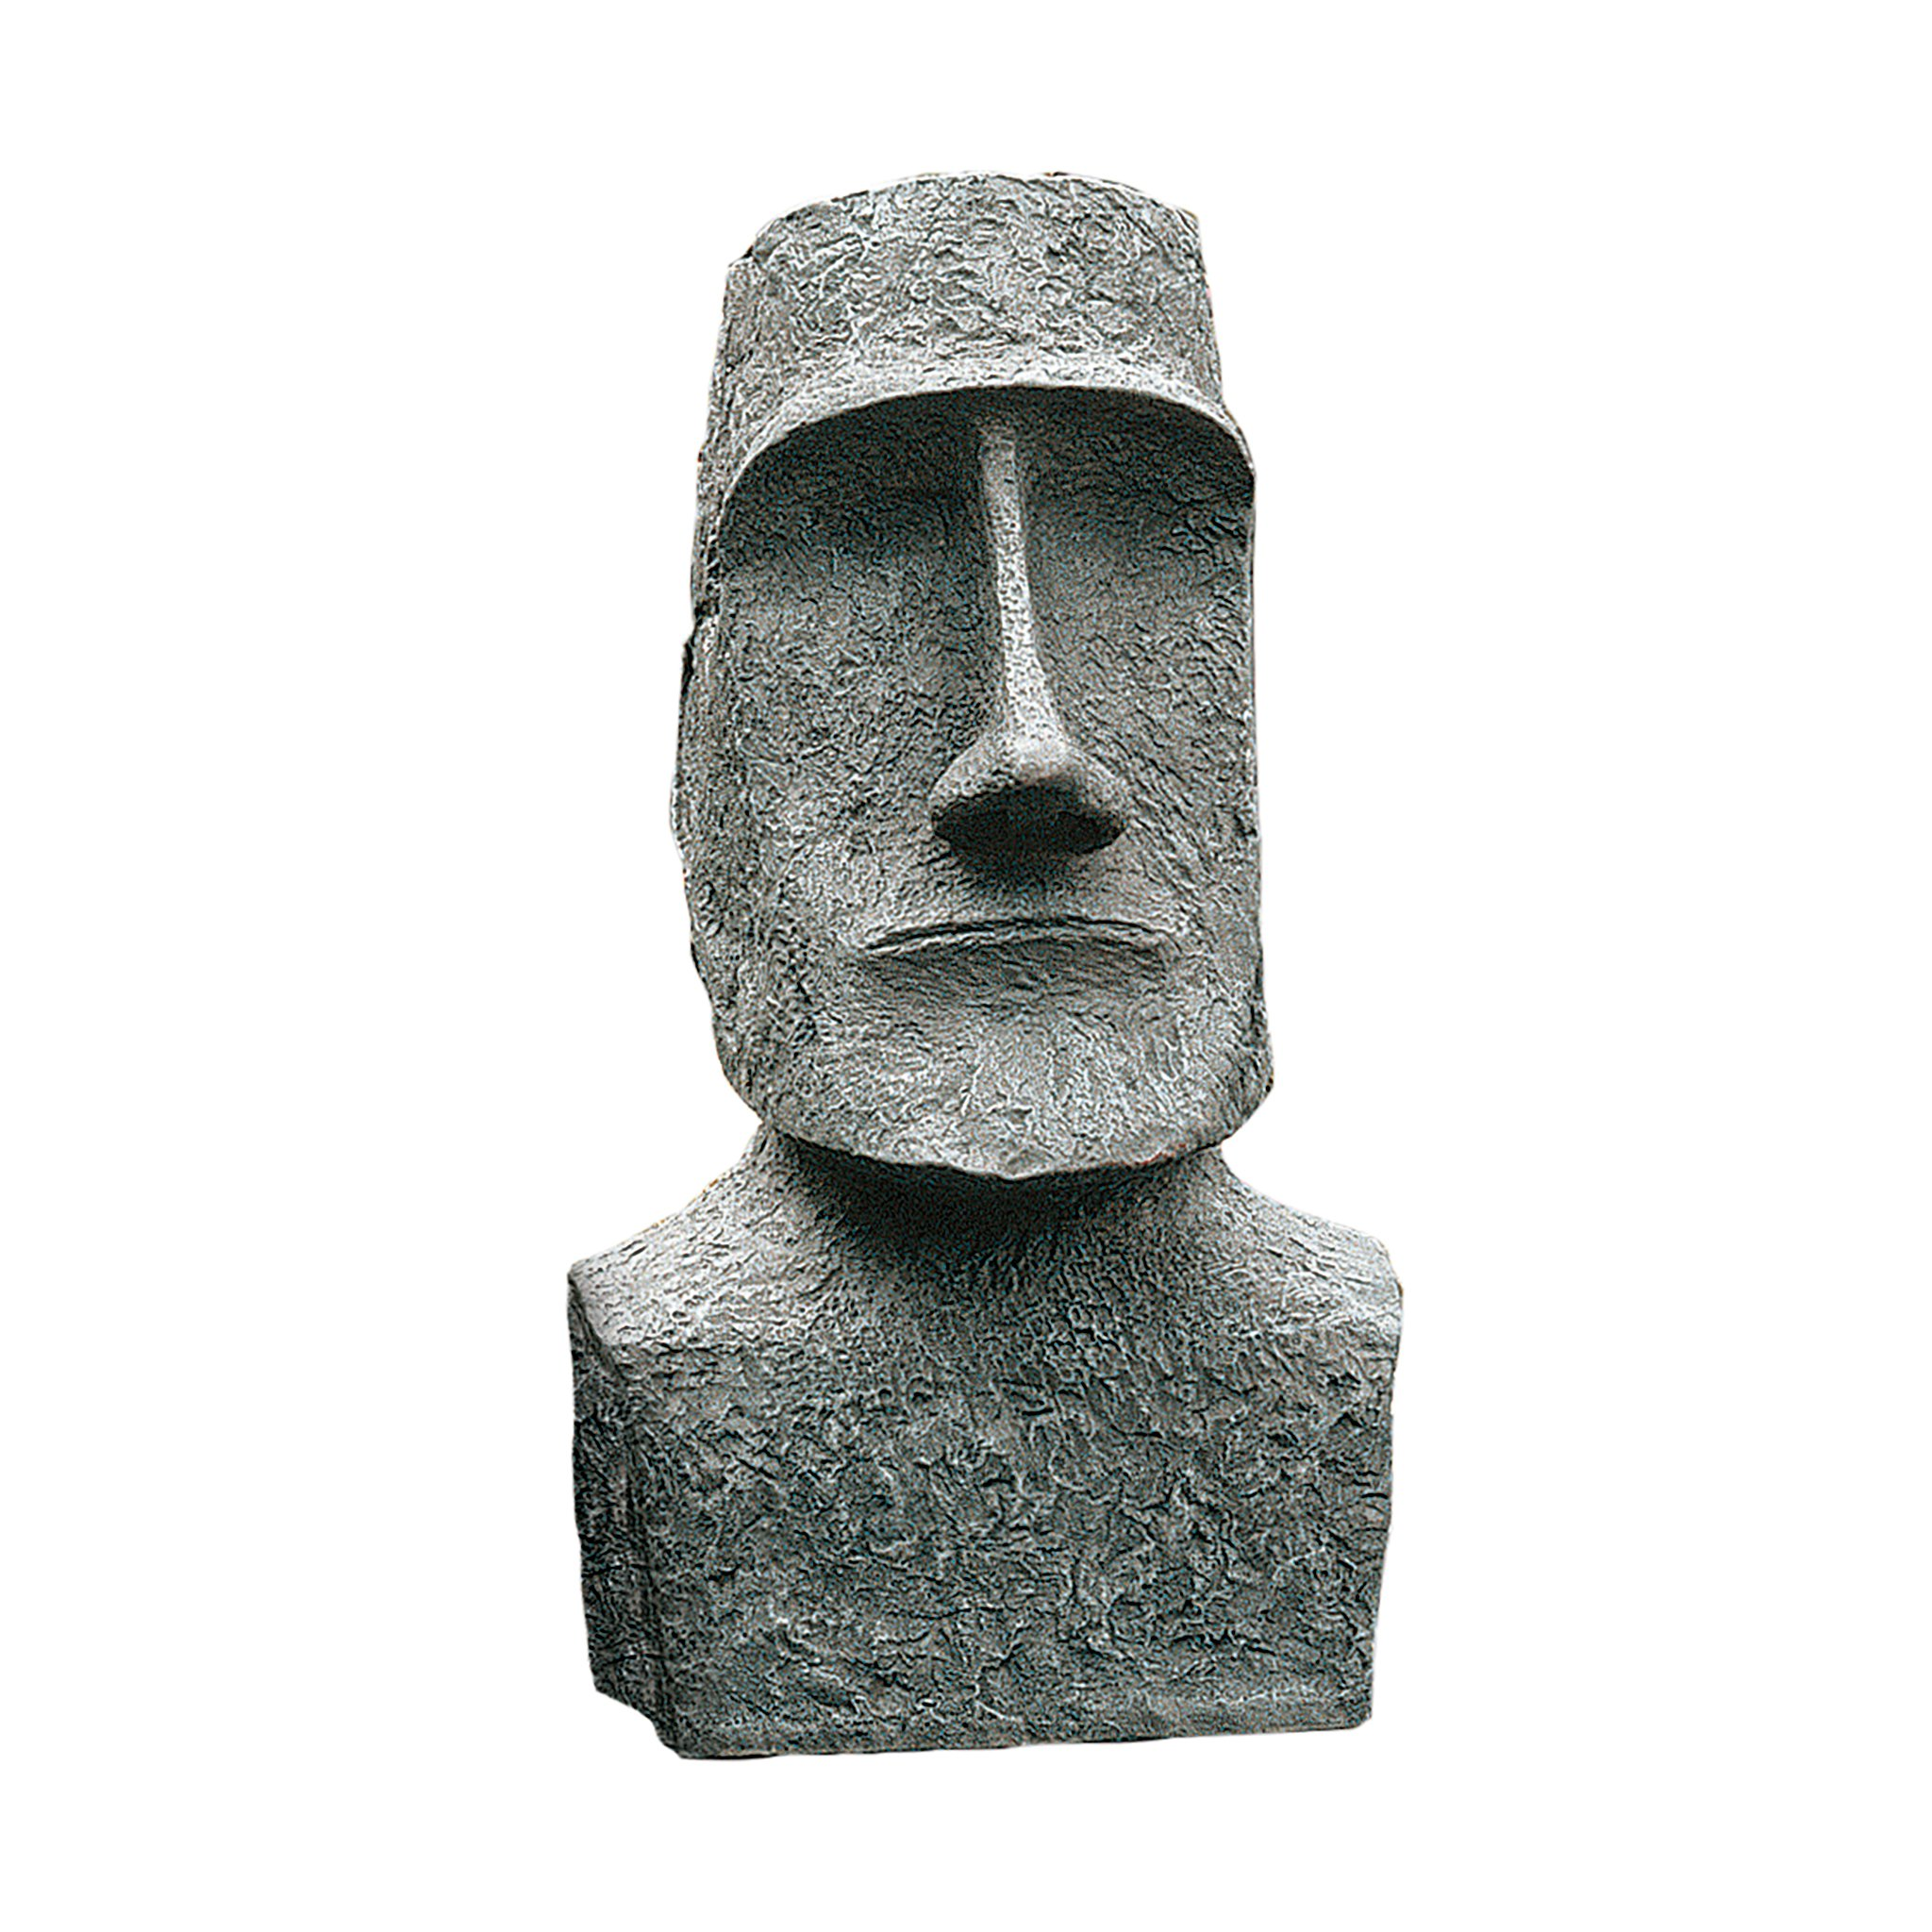 Design Toscano Easter Island Moai Monolith Sculpture by Design Toscano